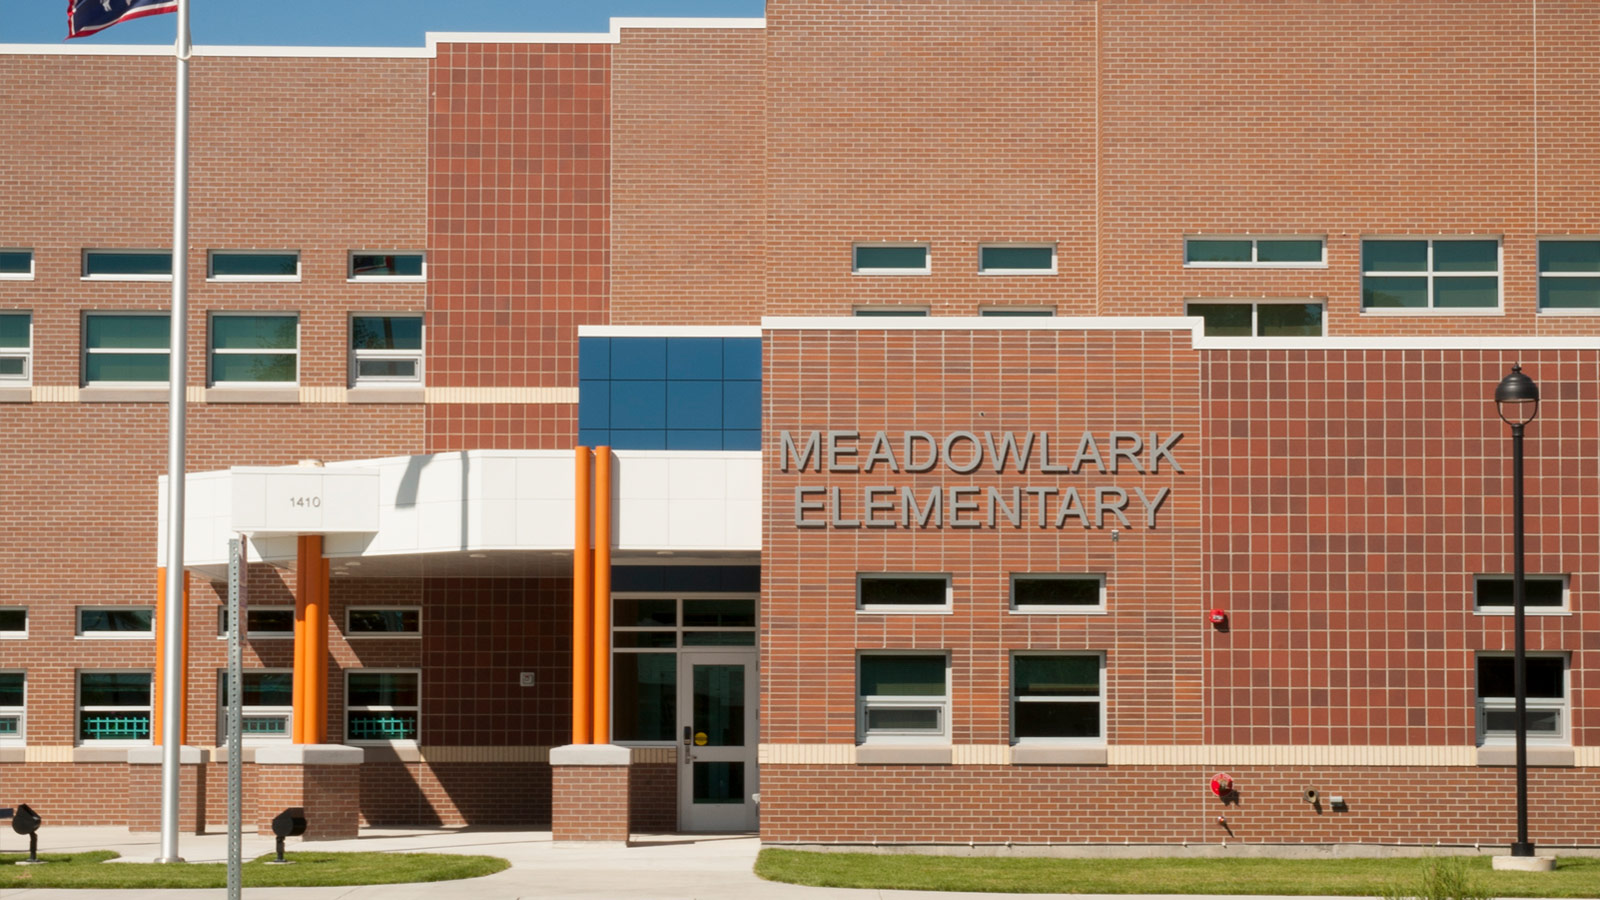 Sheridan County School District No. 2 Meadowlark Elementary School